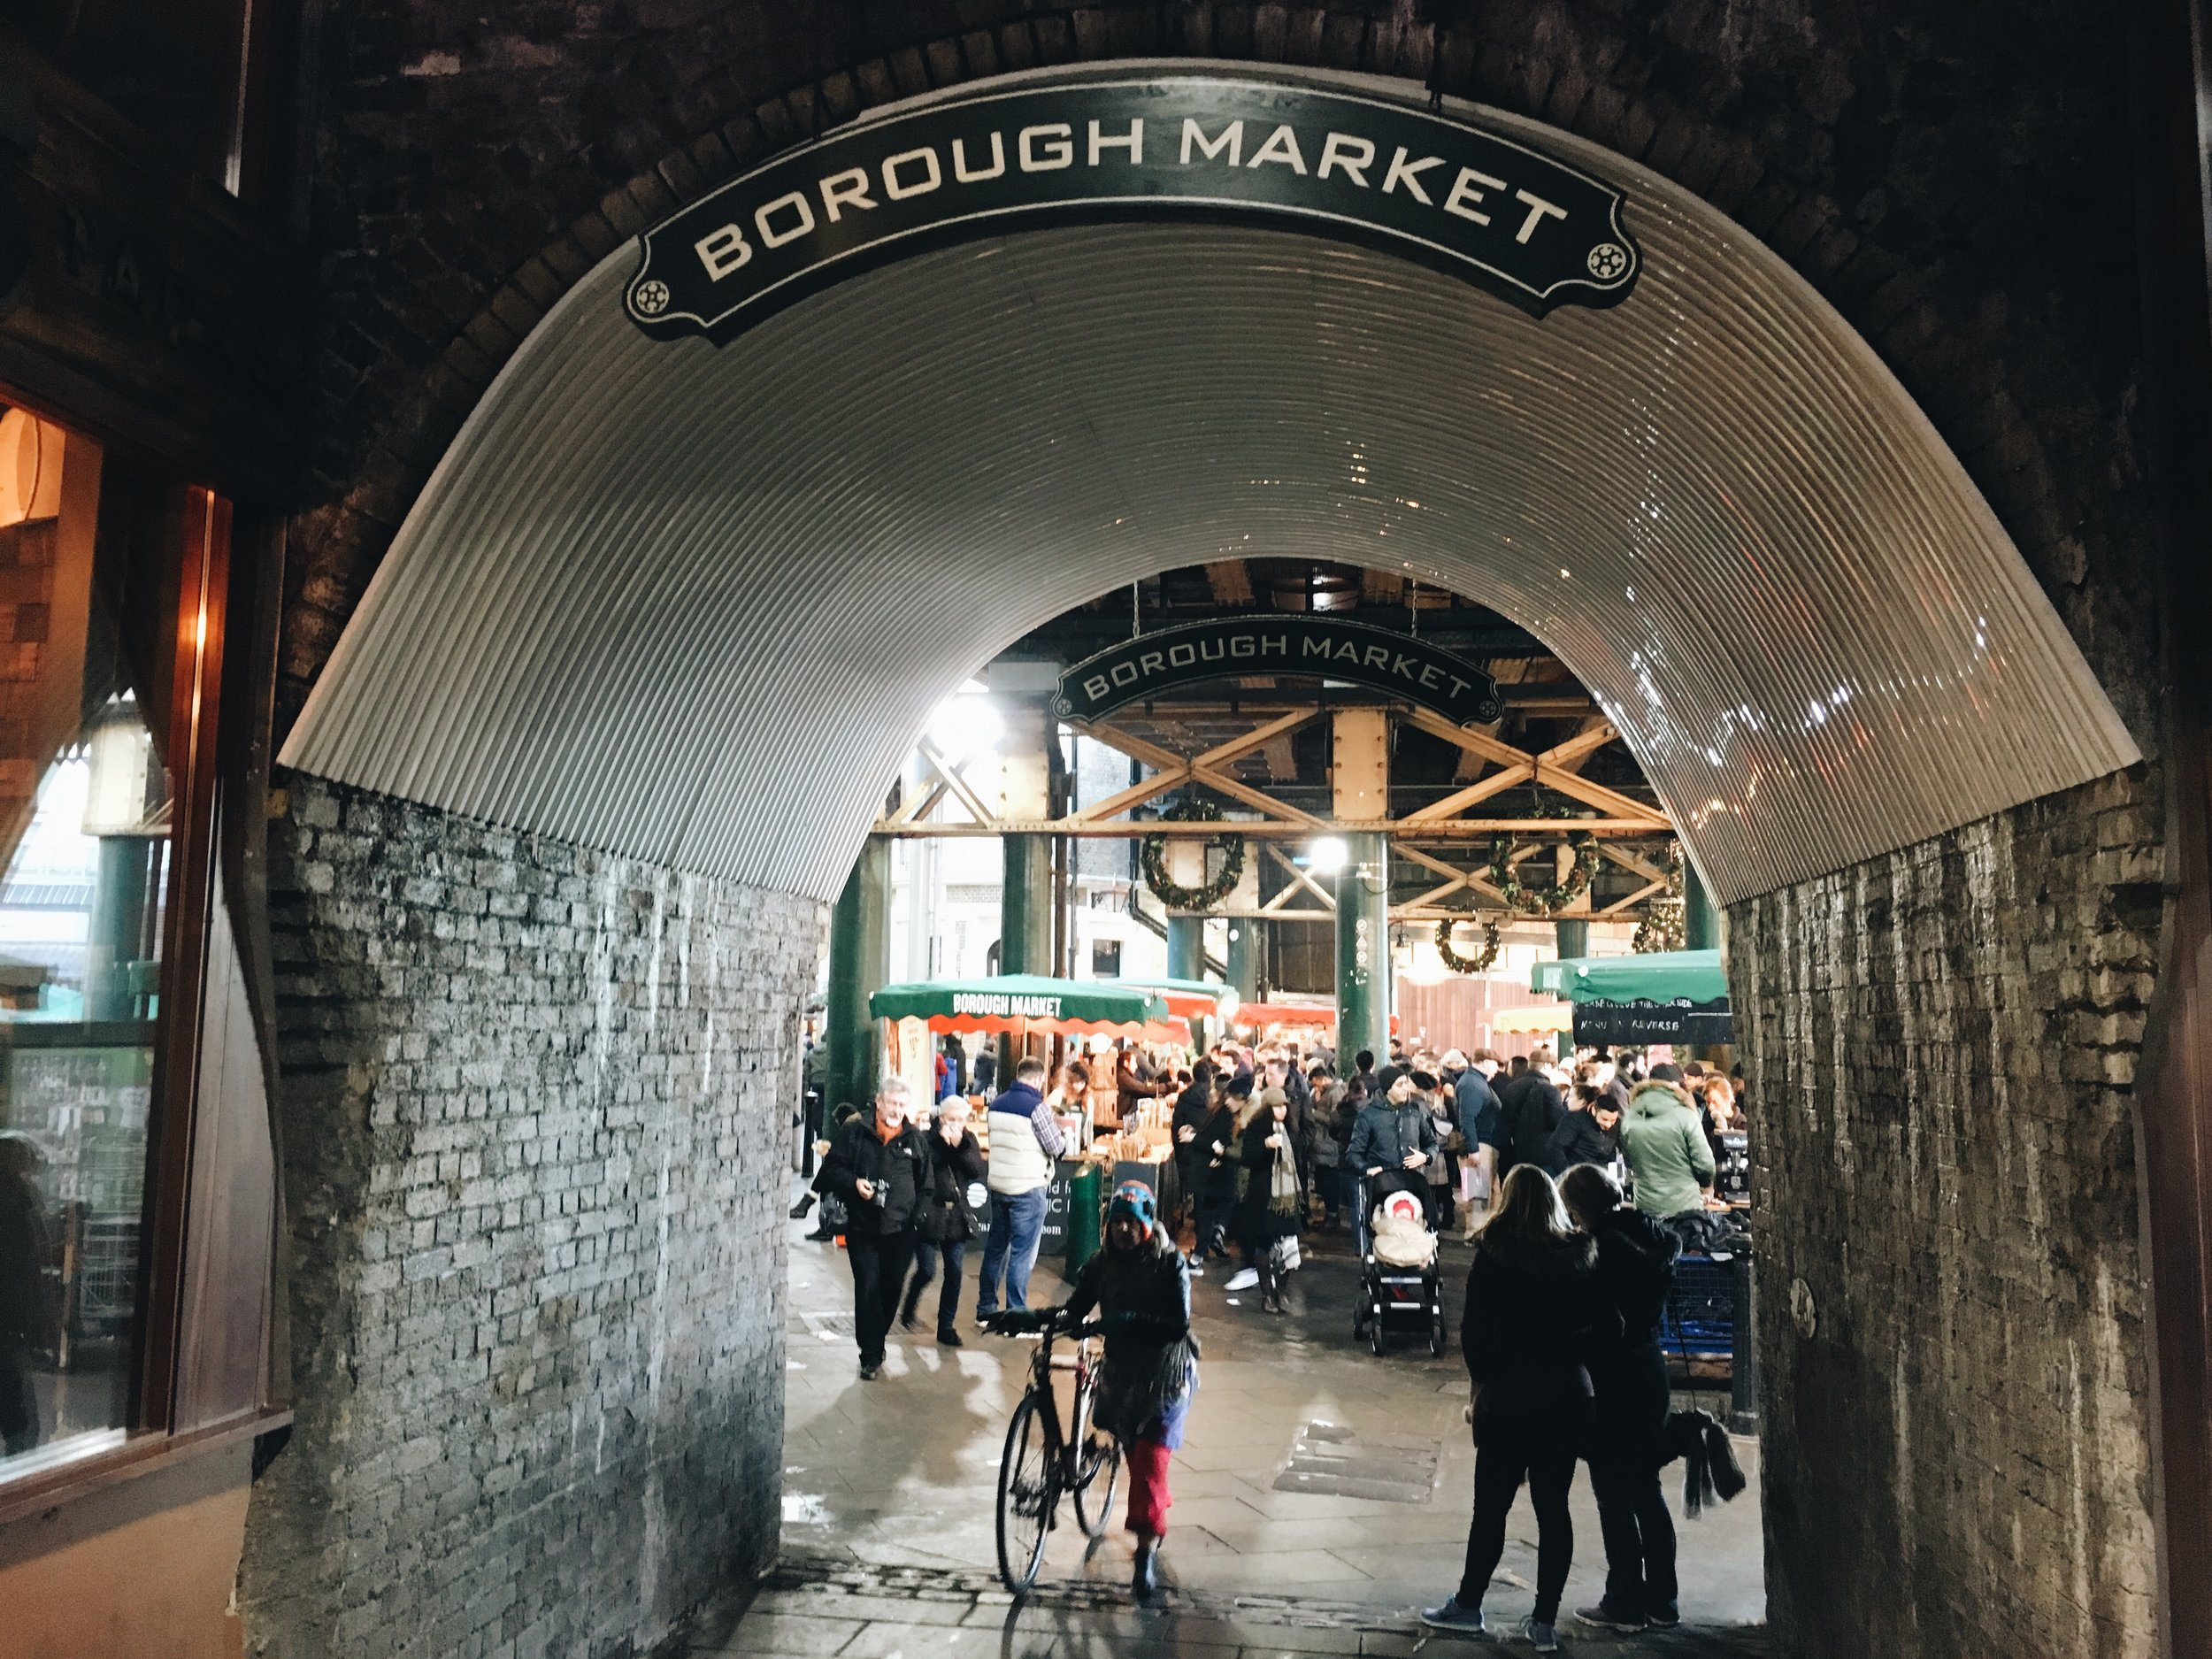 Entrance to Borough Market, London